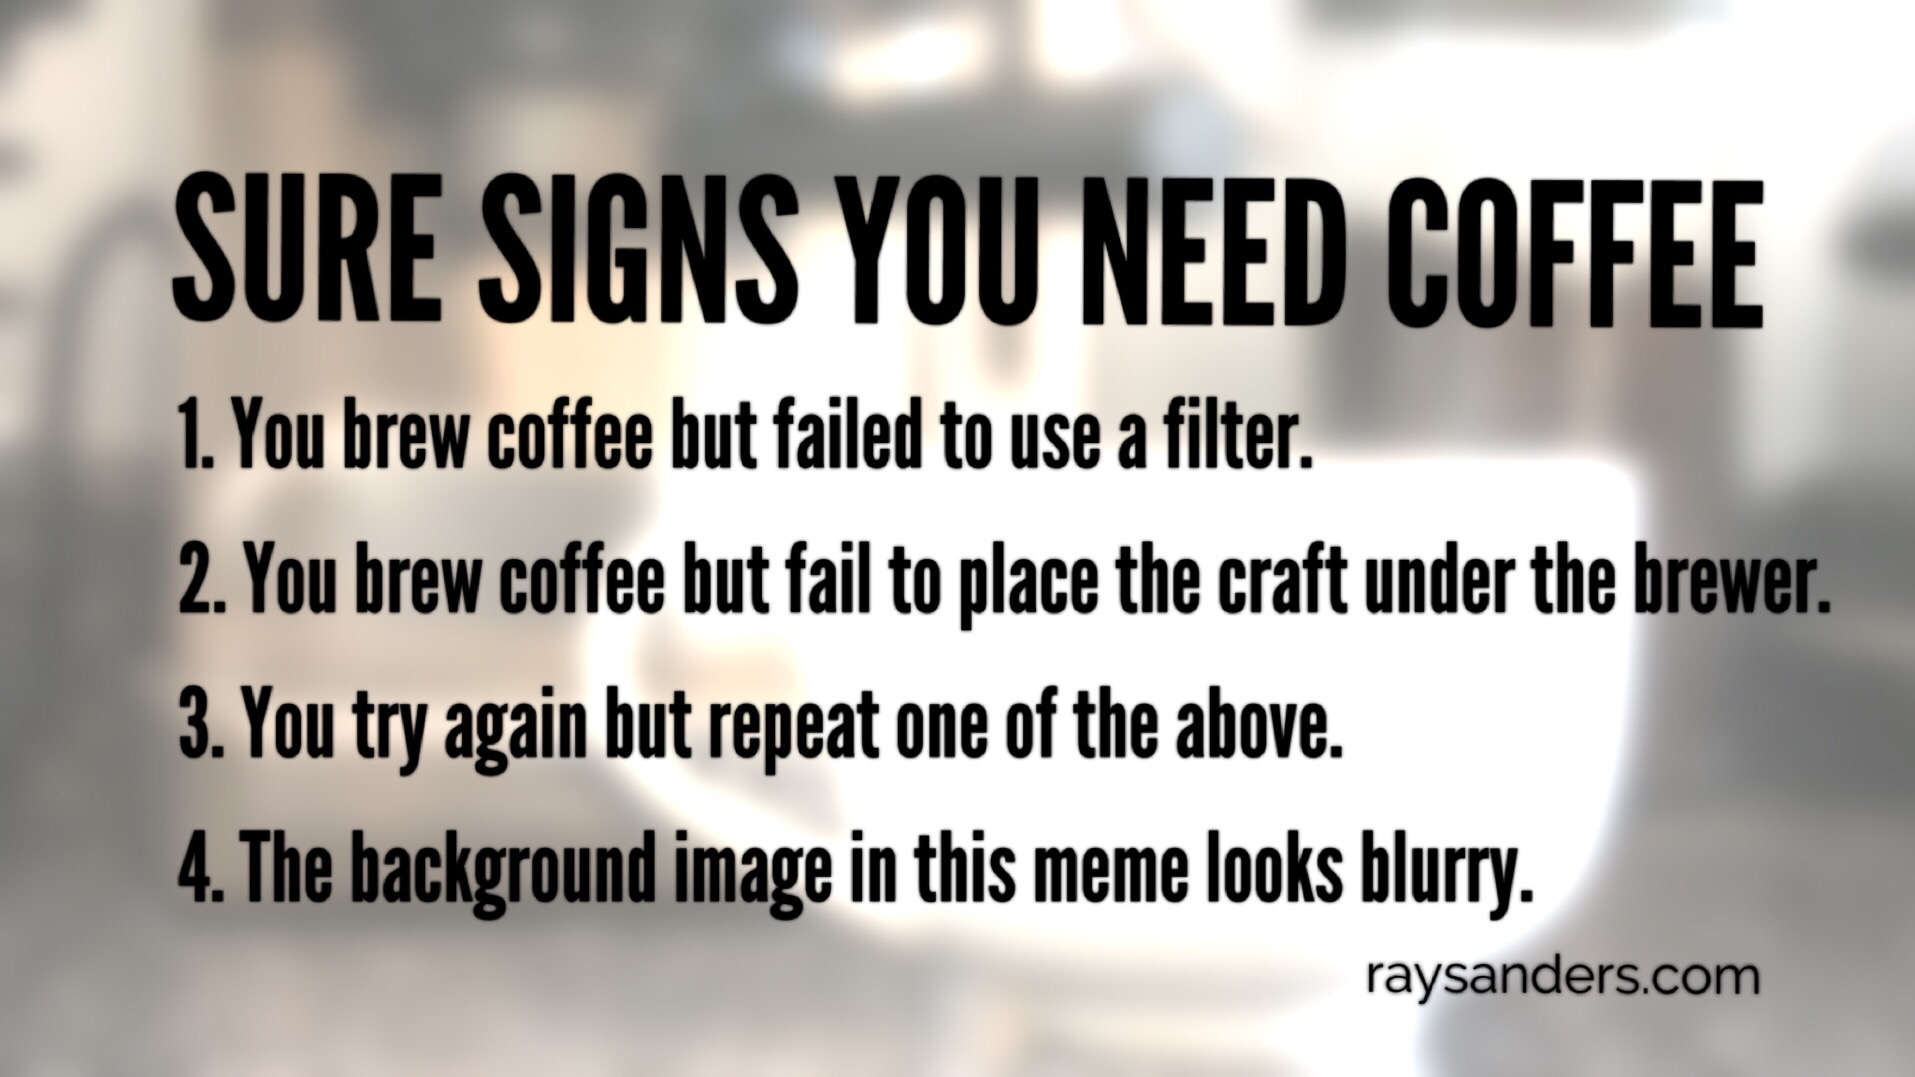 SURE SIGNS YOU NEED COFFEE